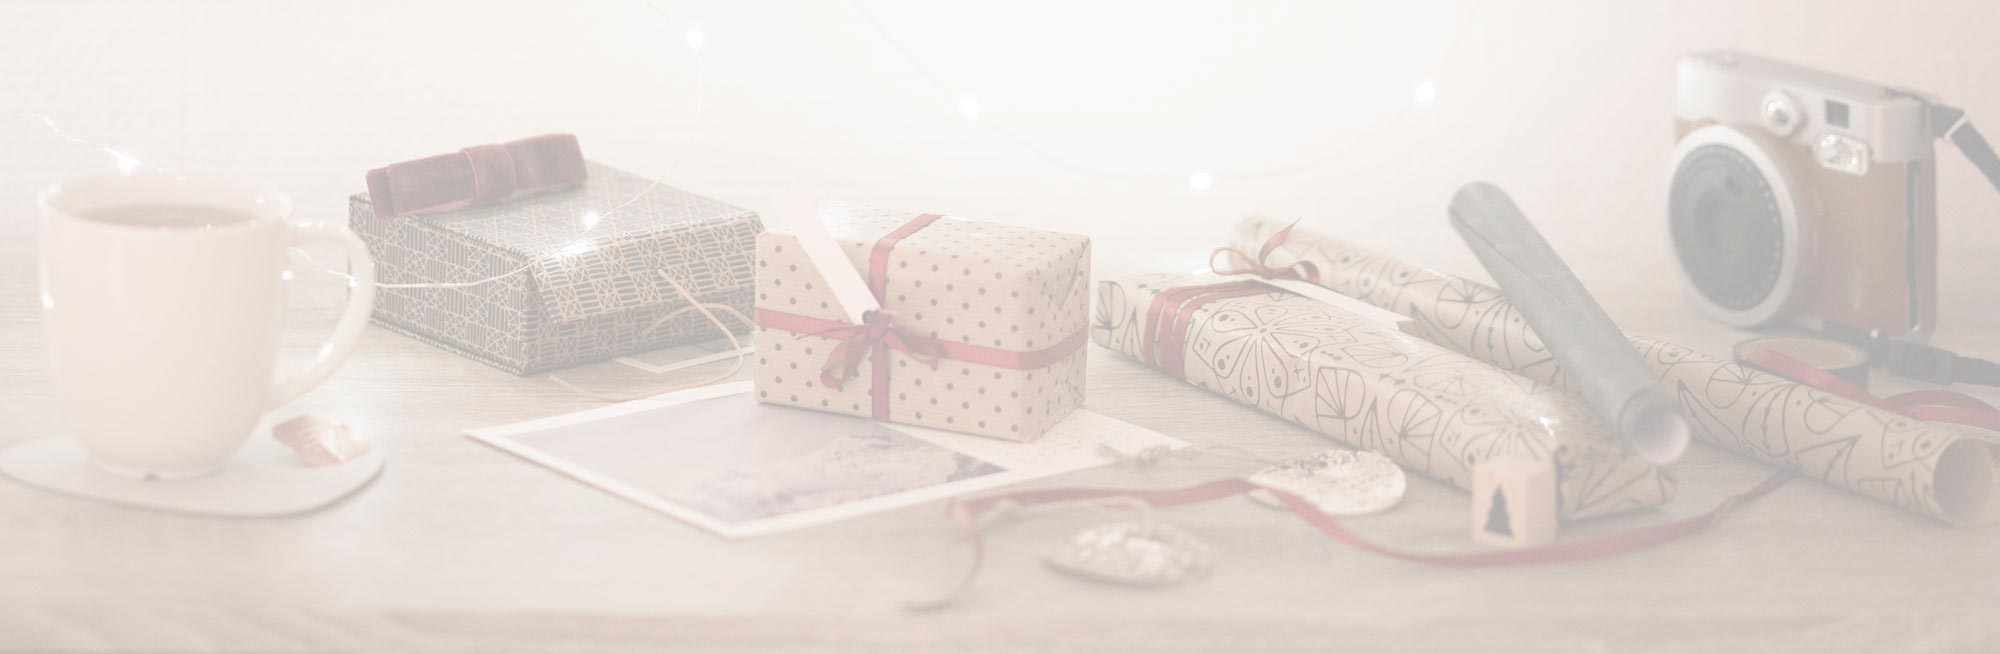 Holiday Background Image of Gifts